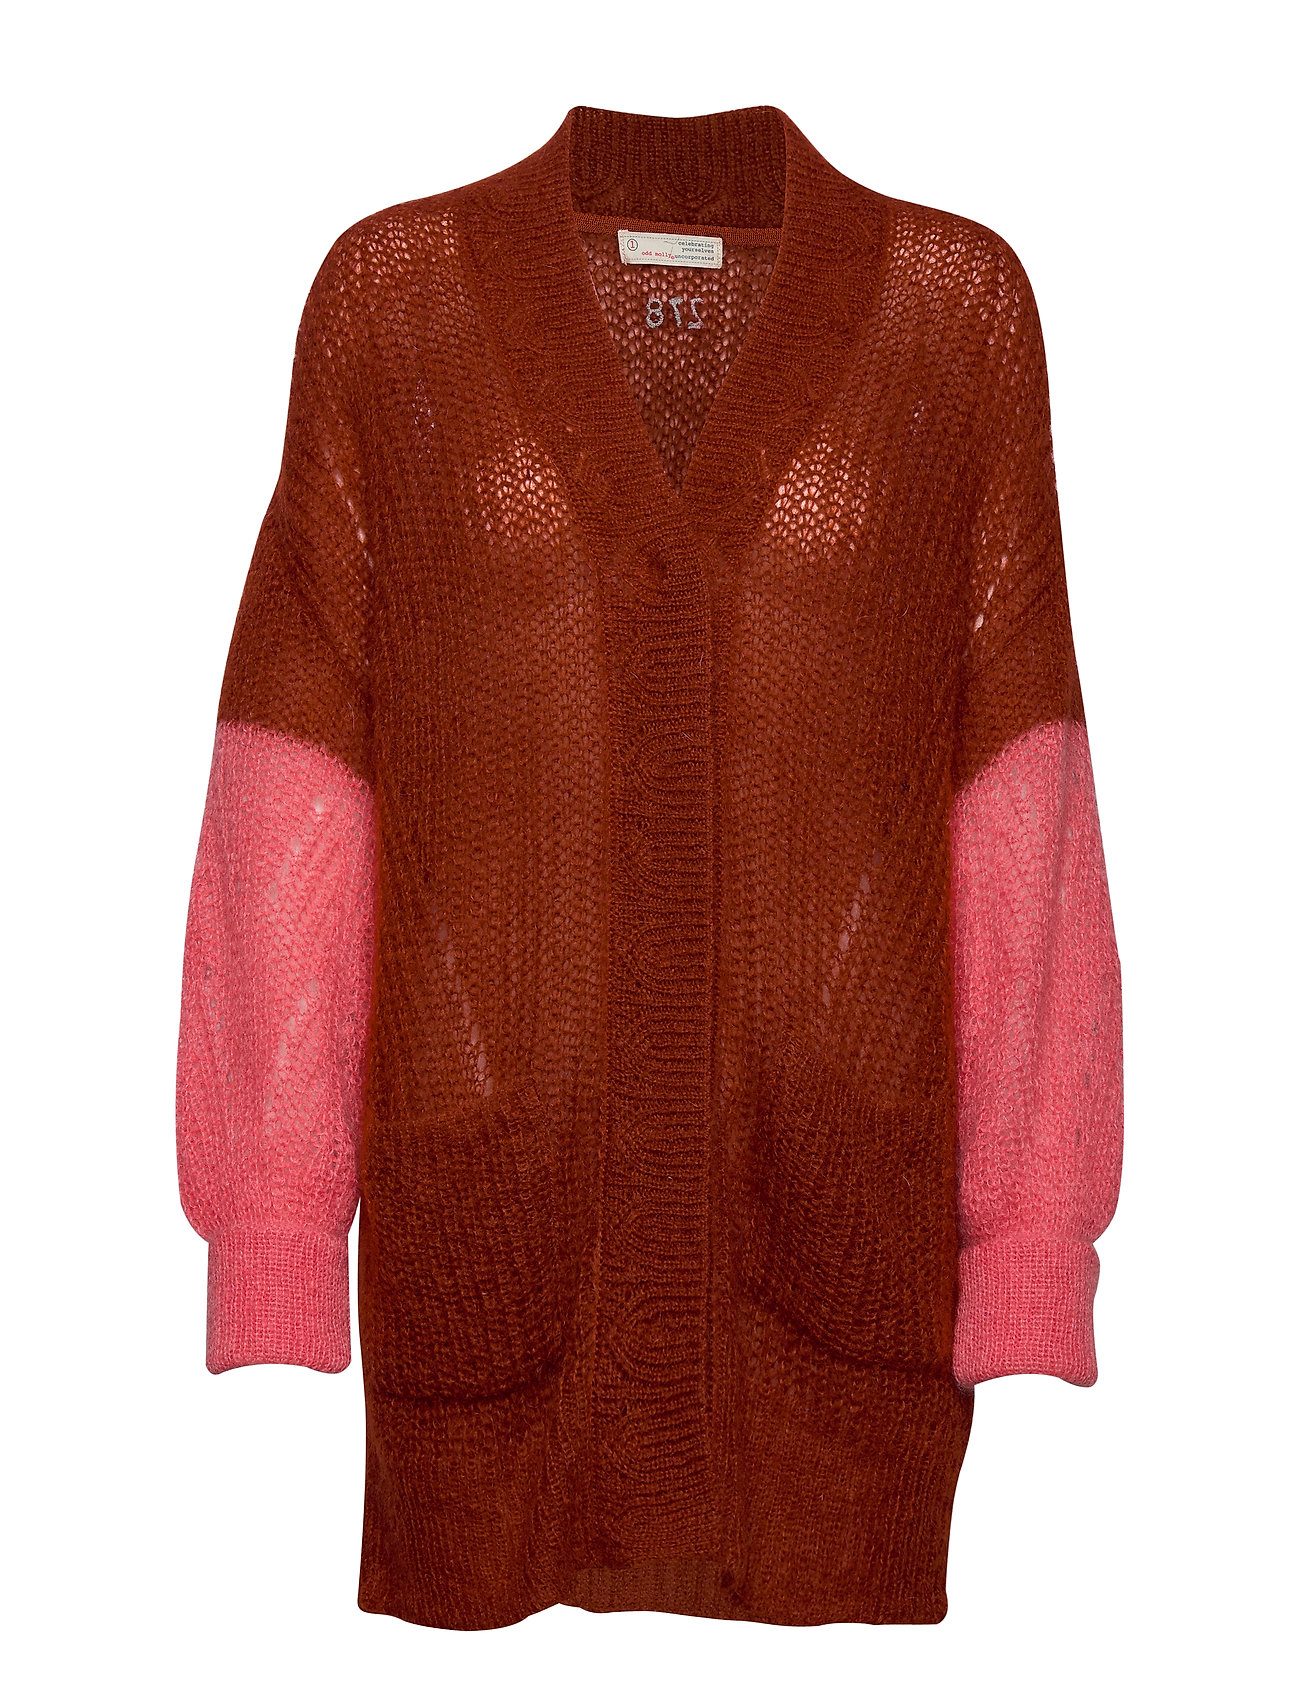 ODD MOLLY Savage Cardigan - RUSSET BROWN